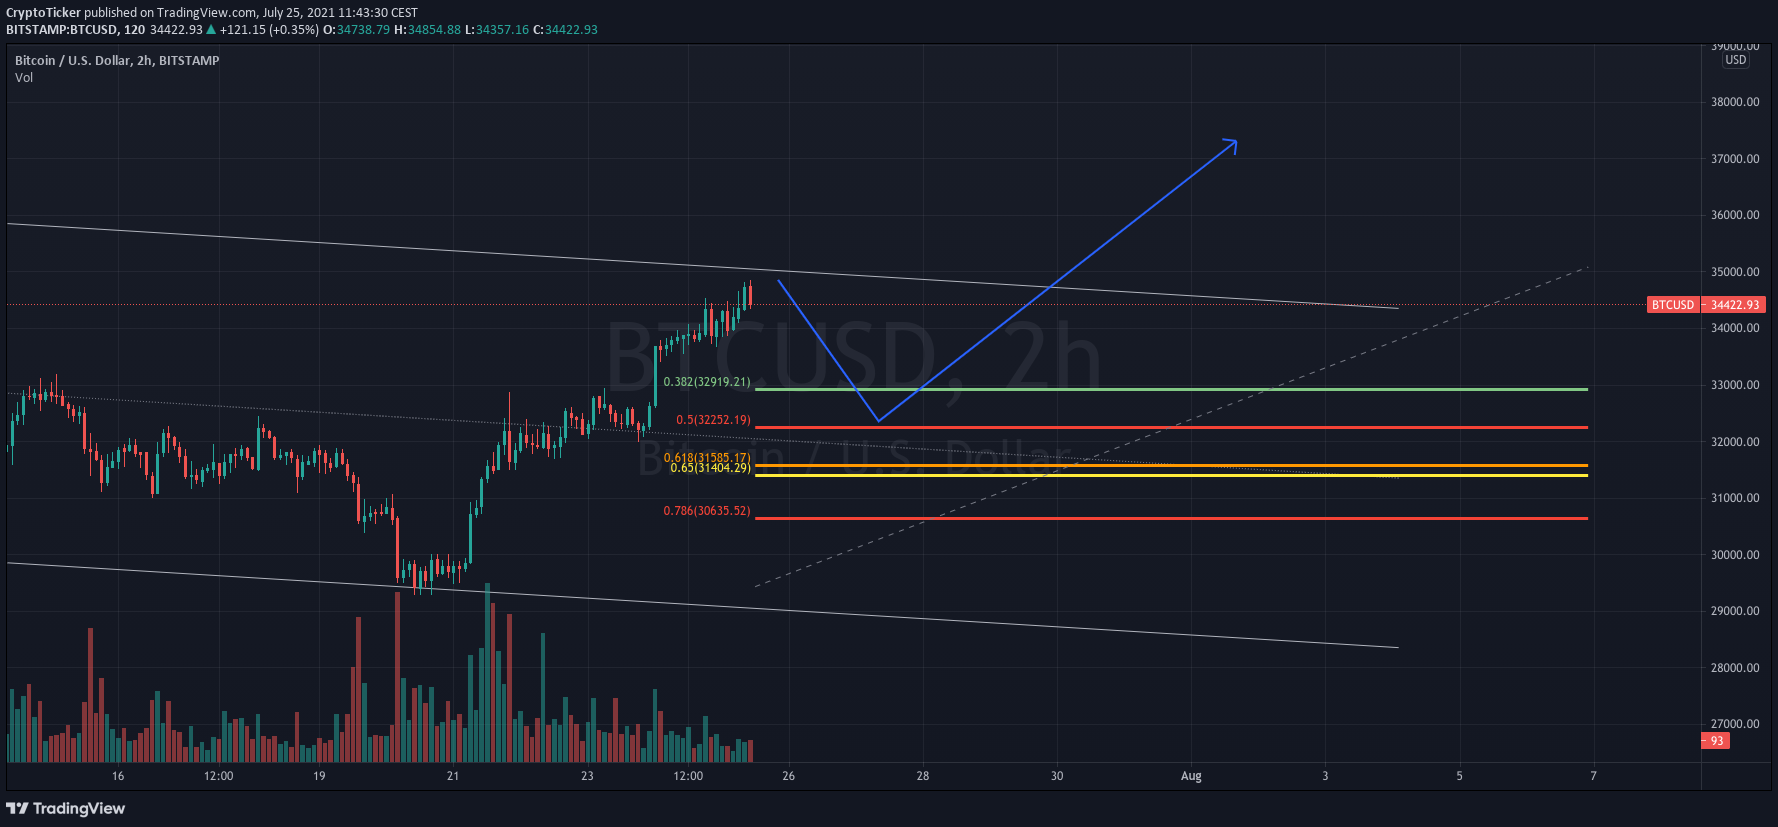 BTC/USD 2-hours chart showing a potential retracement for BTC